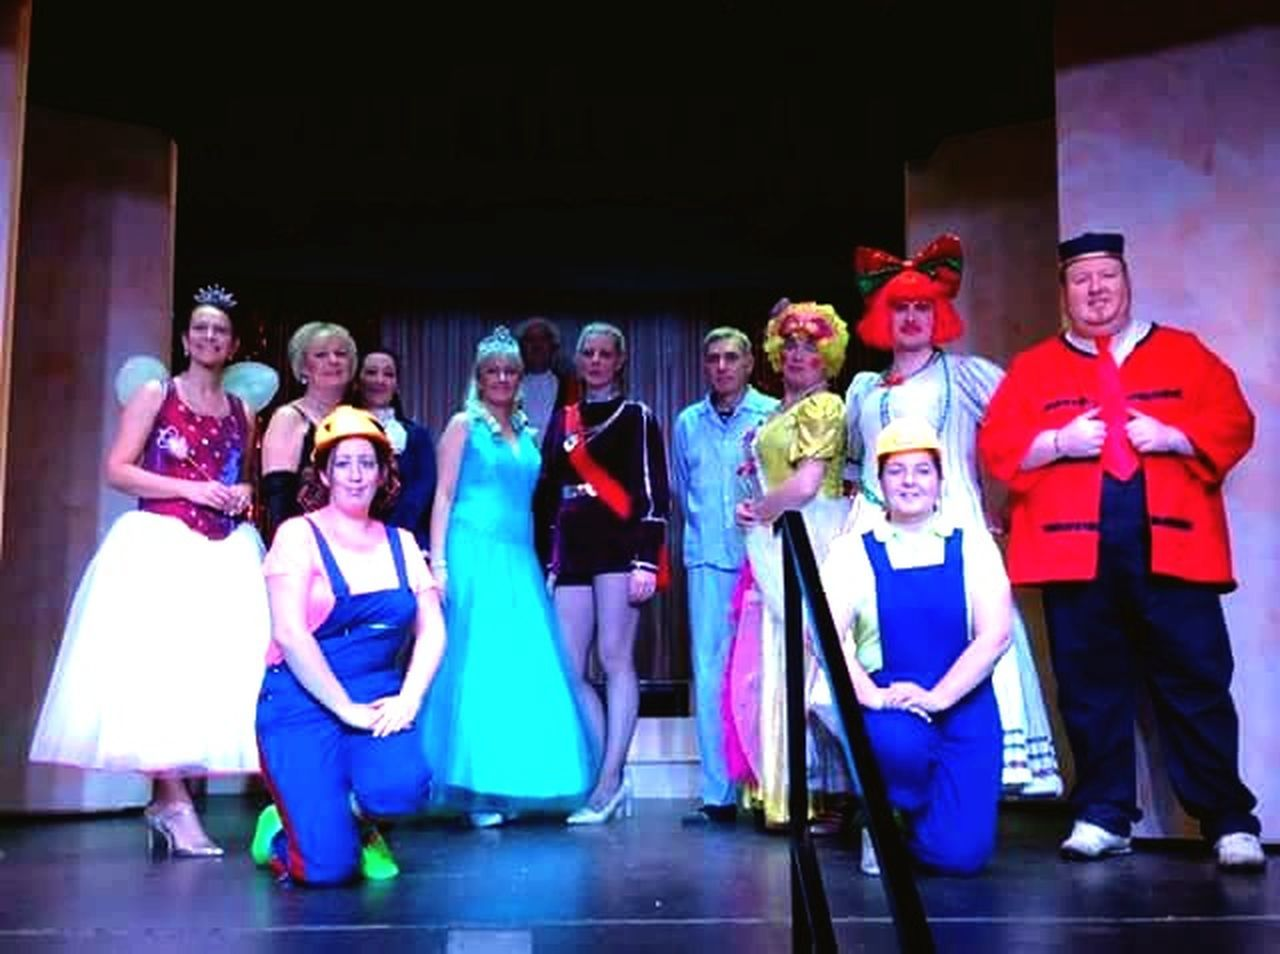 Bispham Blackpool St Bernadettes Players Pantomime Cinderella 40years First Eyeem Photo People Amateur Drama Stage Lights Scenery Show February 2017 My First time at Directing. The show was a huge hit. so proud.